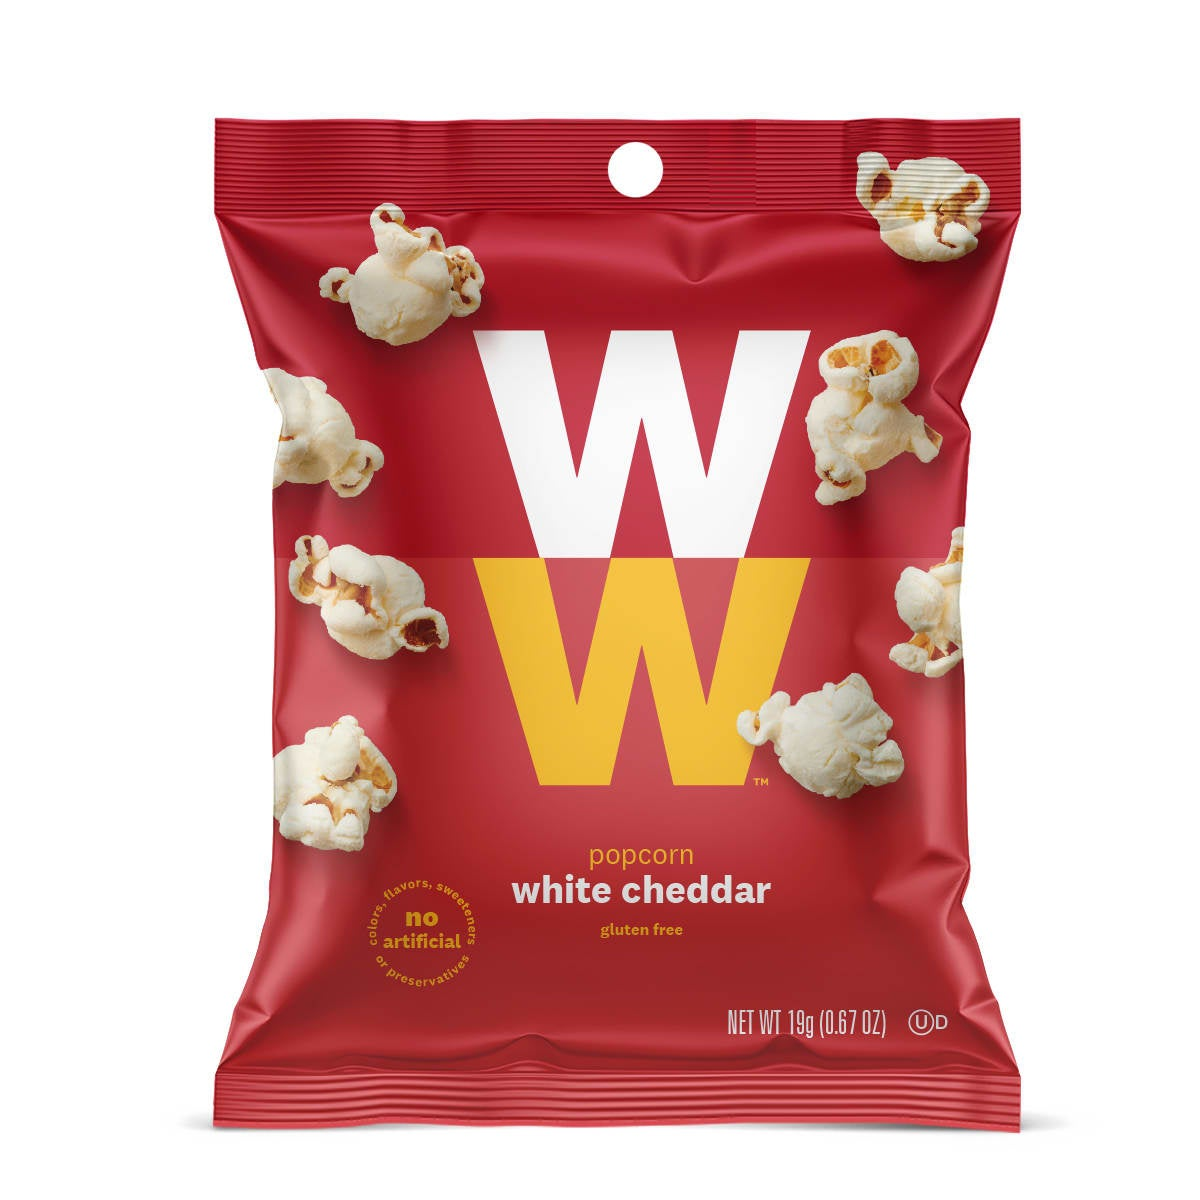 White Cheddar Popcorn - Pack of 6, front of bag, gluten free, no artificial flavors